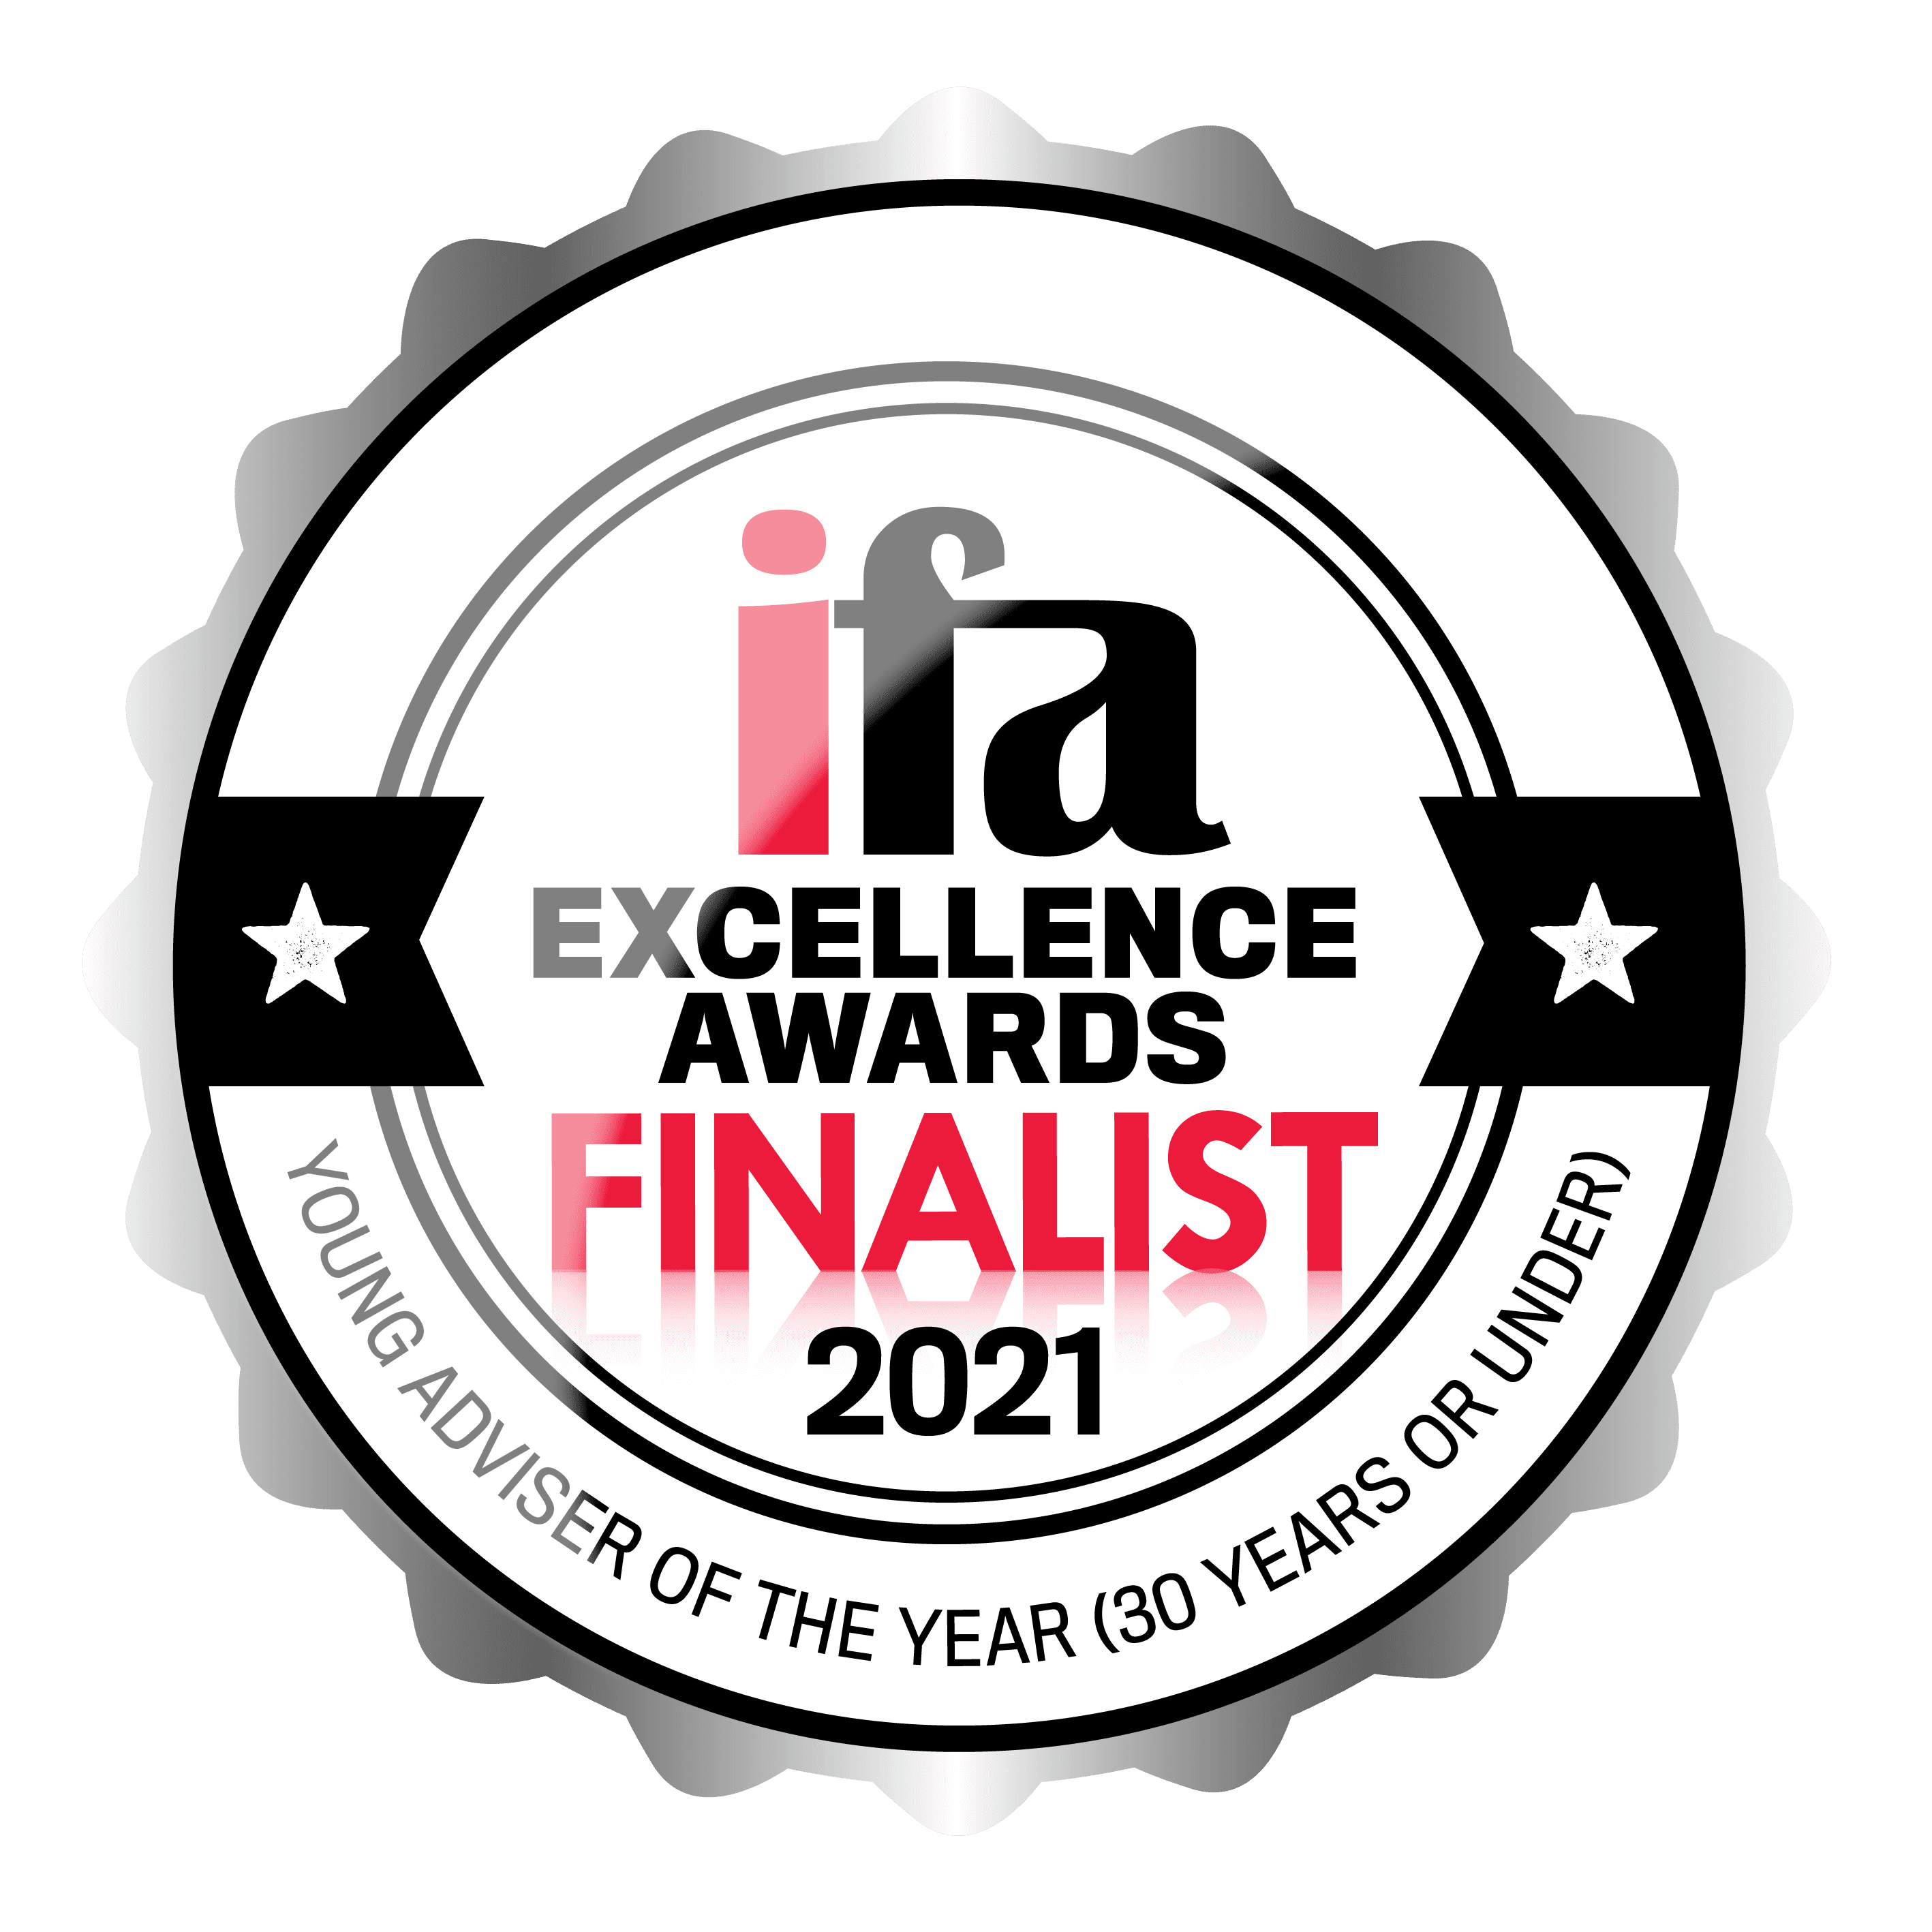 ifa Excellence Awards Finalist - Young Adviser of the Year 2021